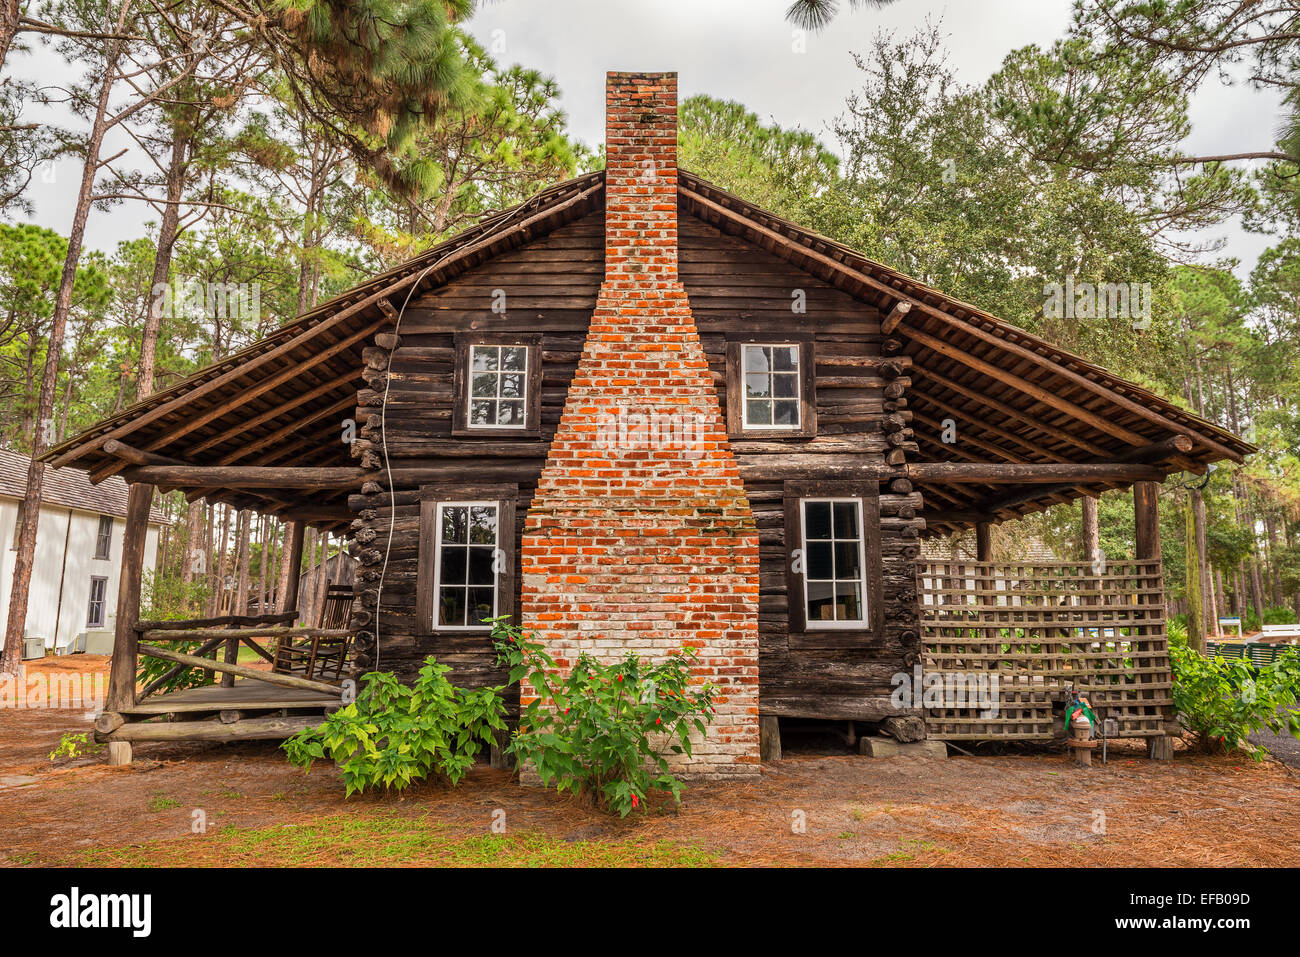 McMullen-Coachman Log House in the Pinellas County Heritage Village Stock Photo